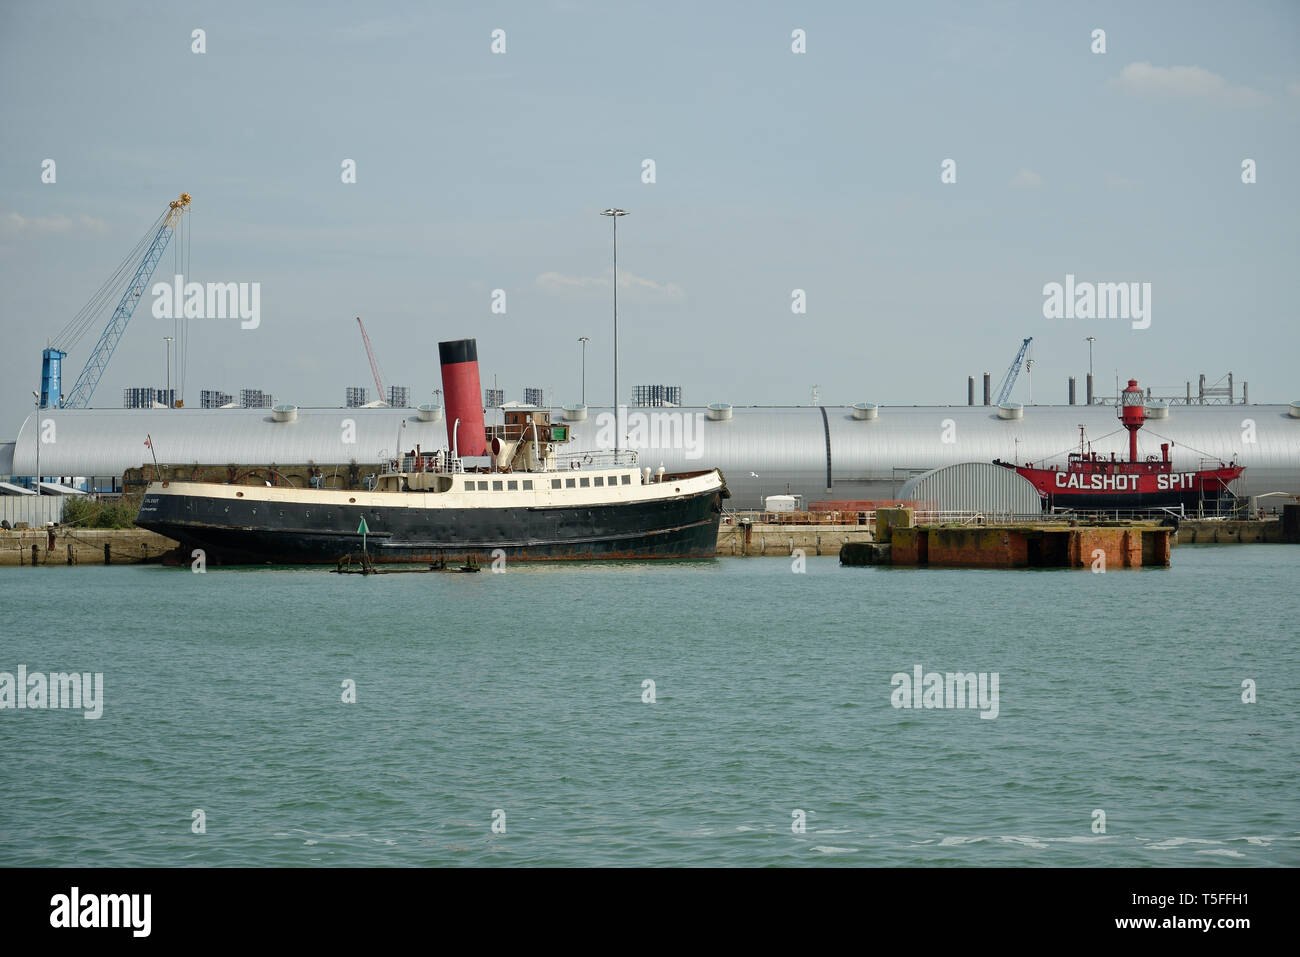 Calshot and Calshot Spit vessels in Southampton, UK. - Stock Image